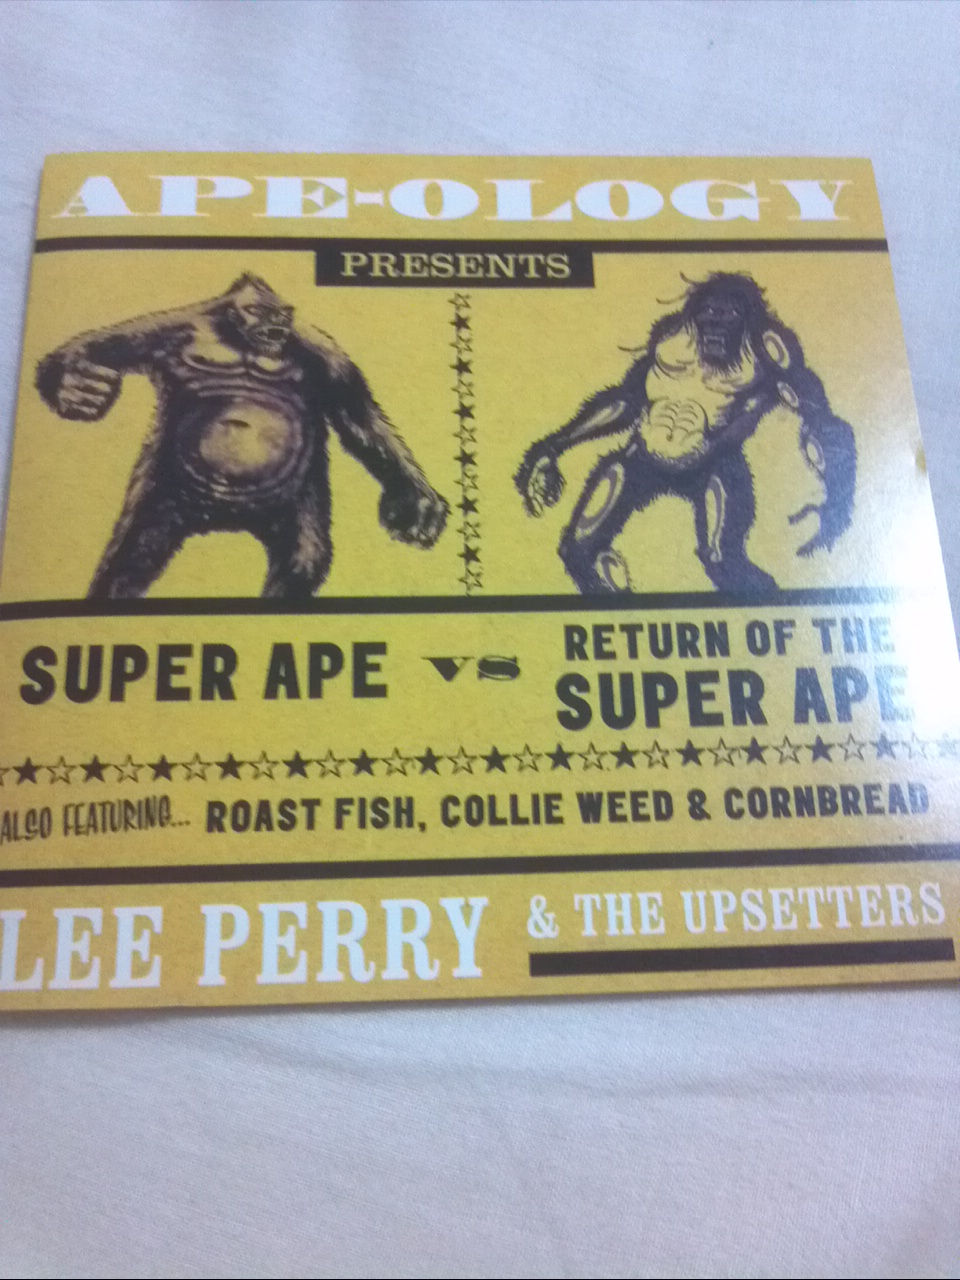 Lee Perry&The Upsetters